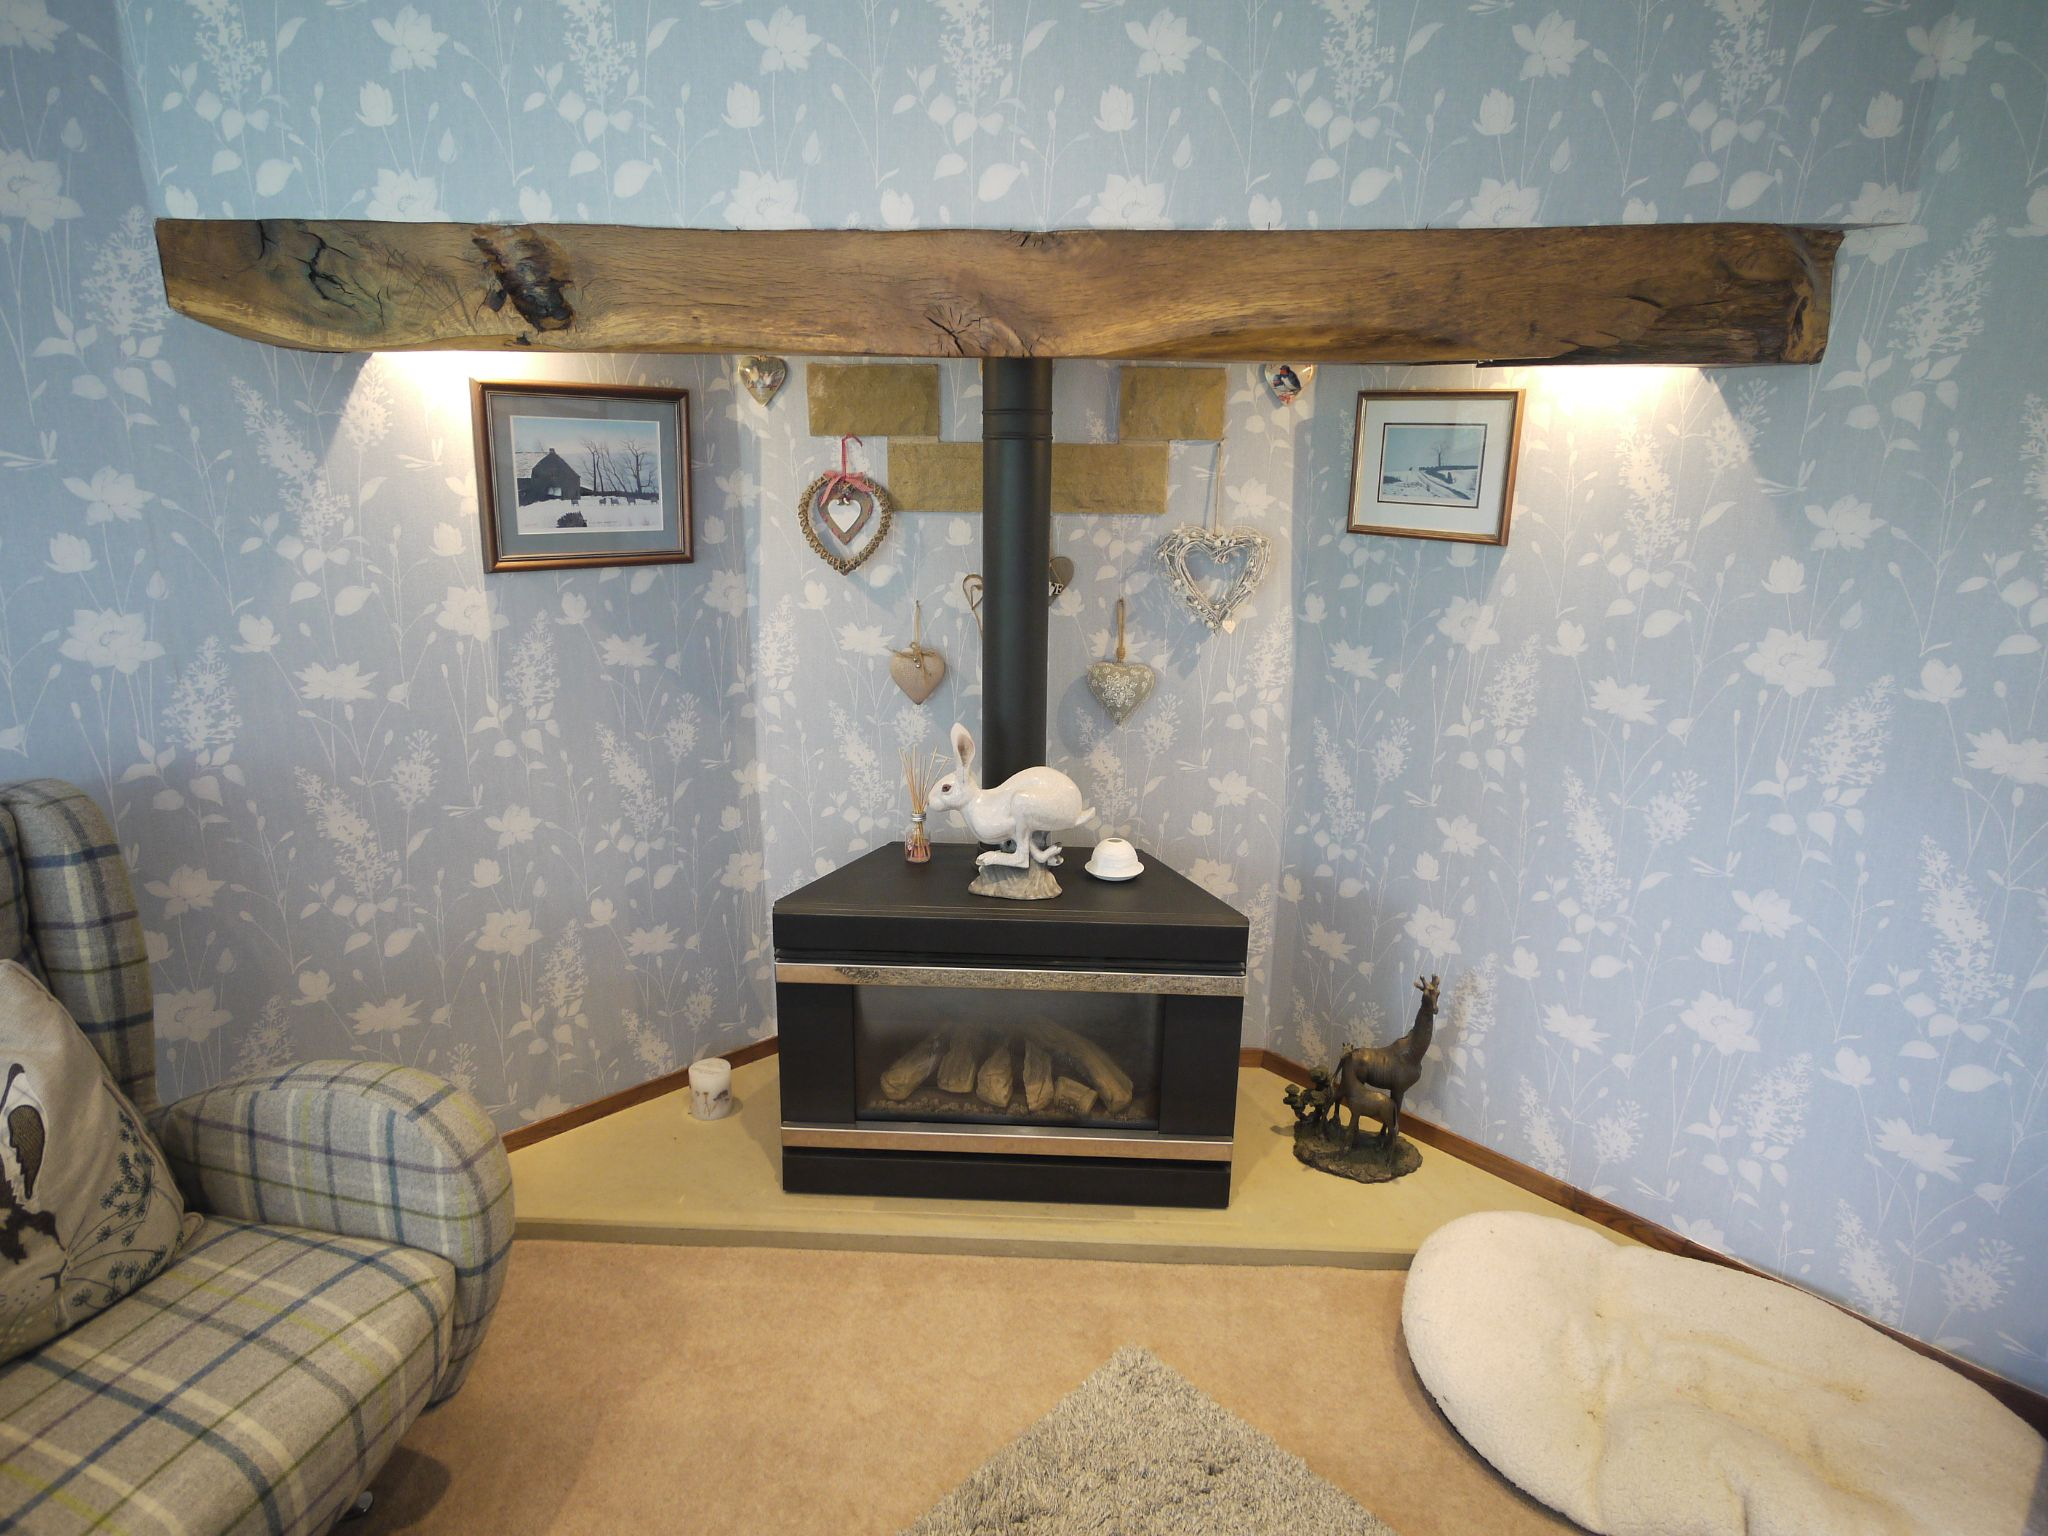 4 bedroom detached house For Sale in Brighouse - fireplace.